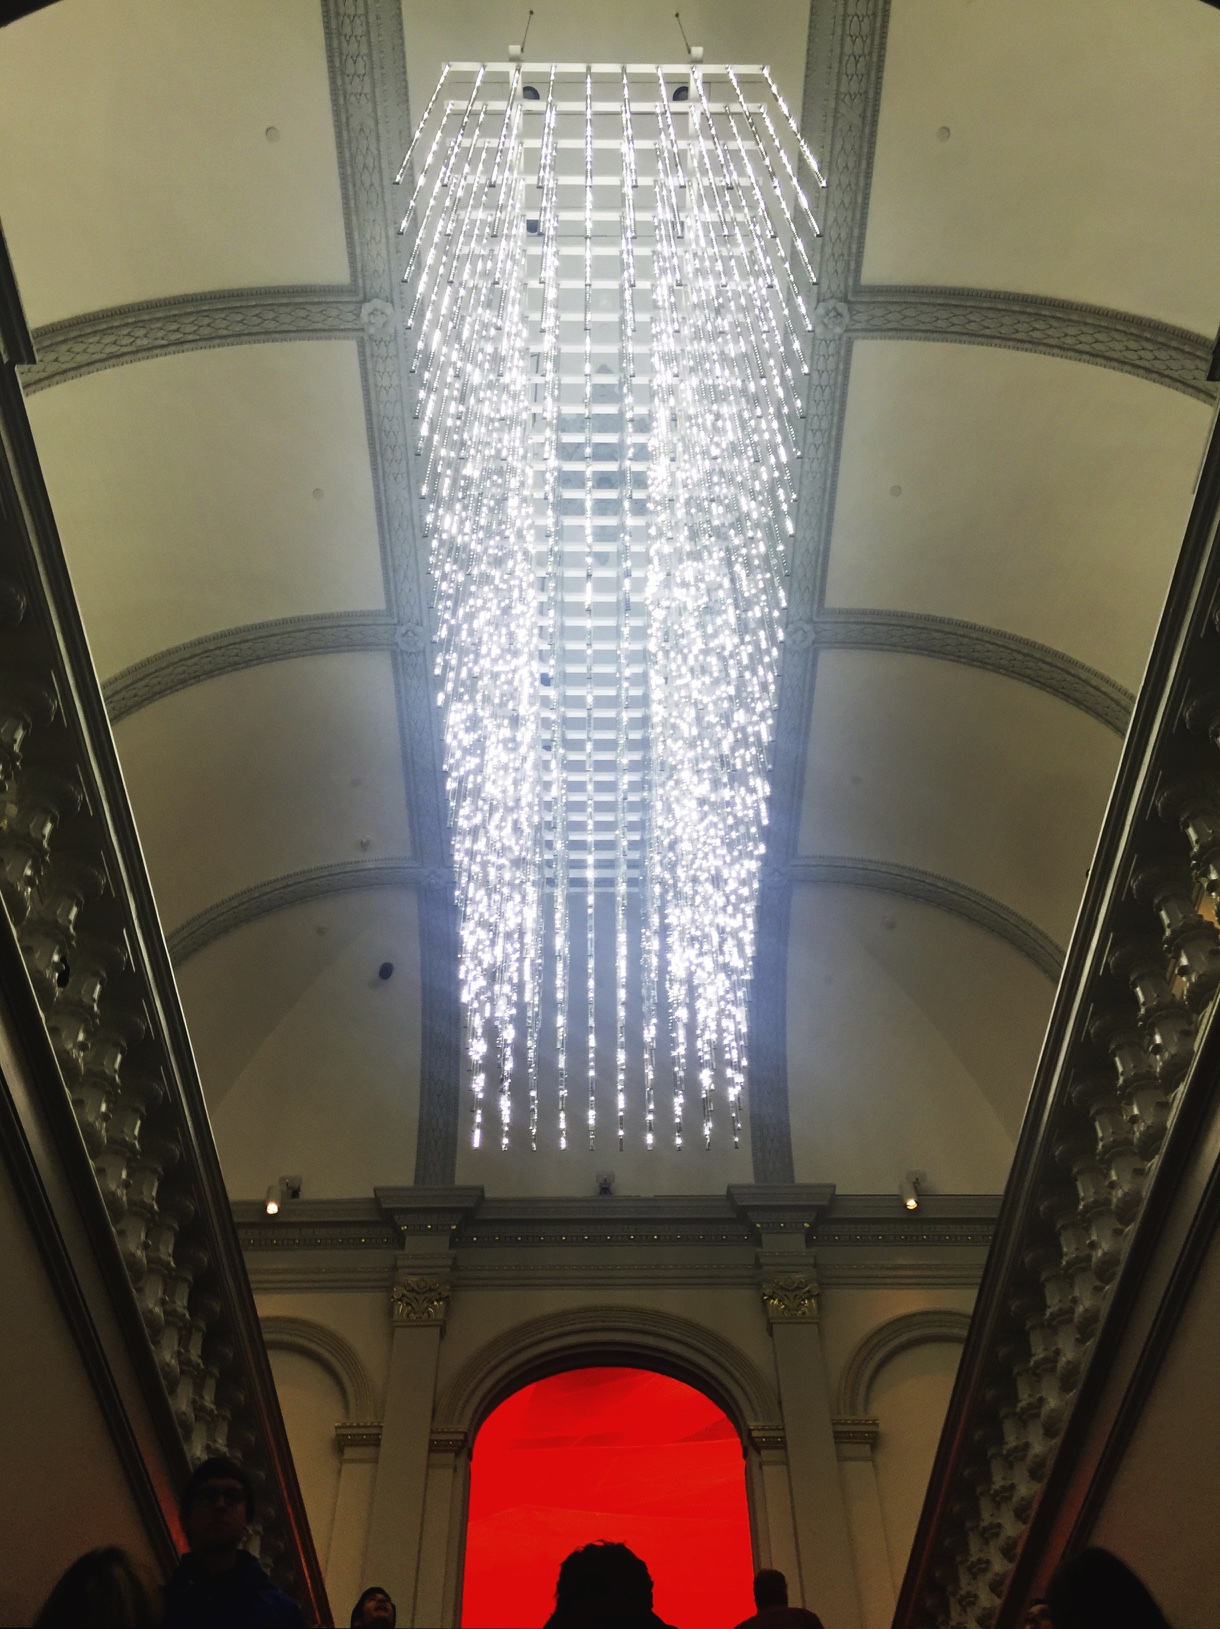 The Renwick Gallery Grand Staircase and Leo Villareal's 23,000 Points of Light : it uses LEDs embedded in 320 mirrored stainless steel rods.